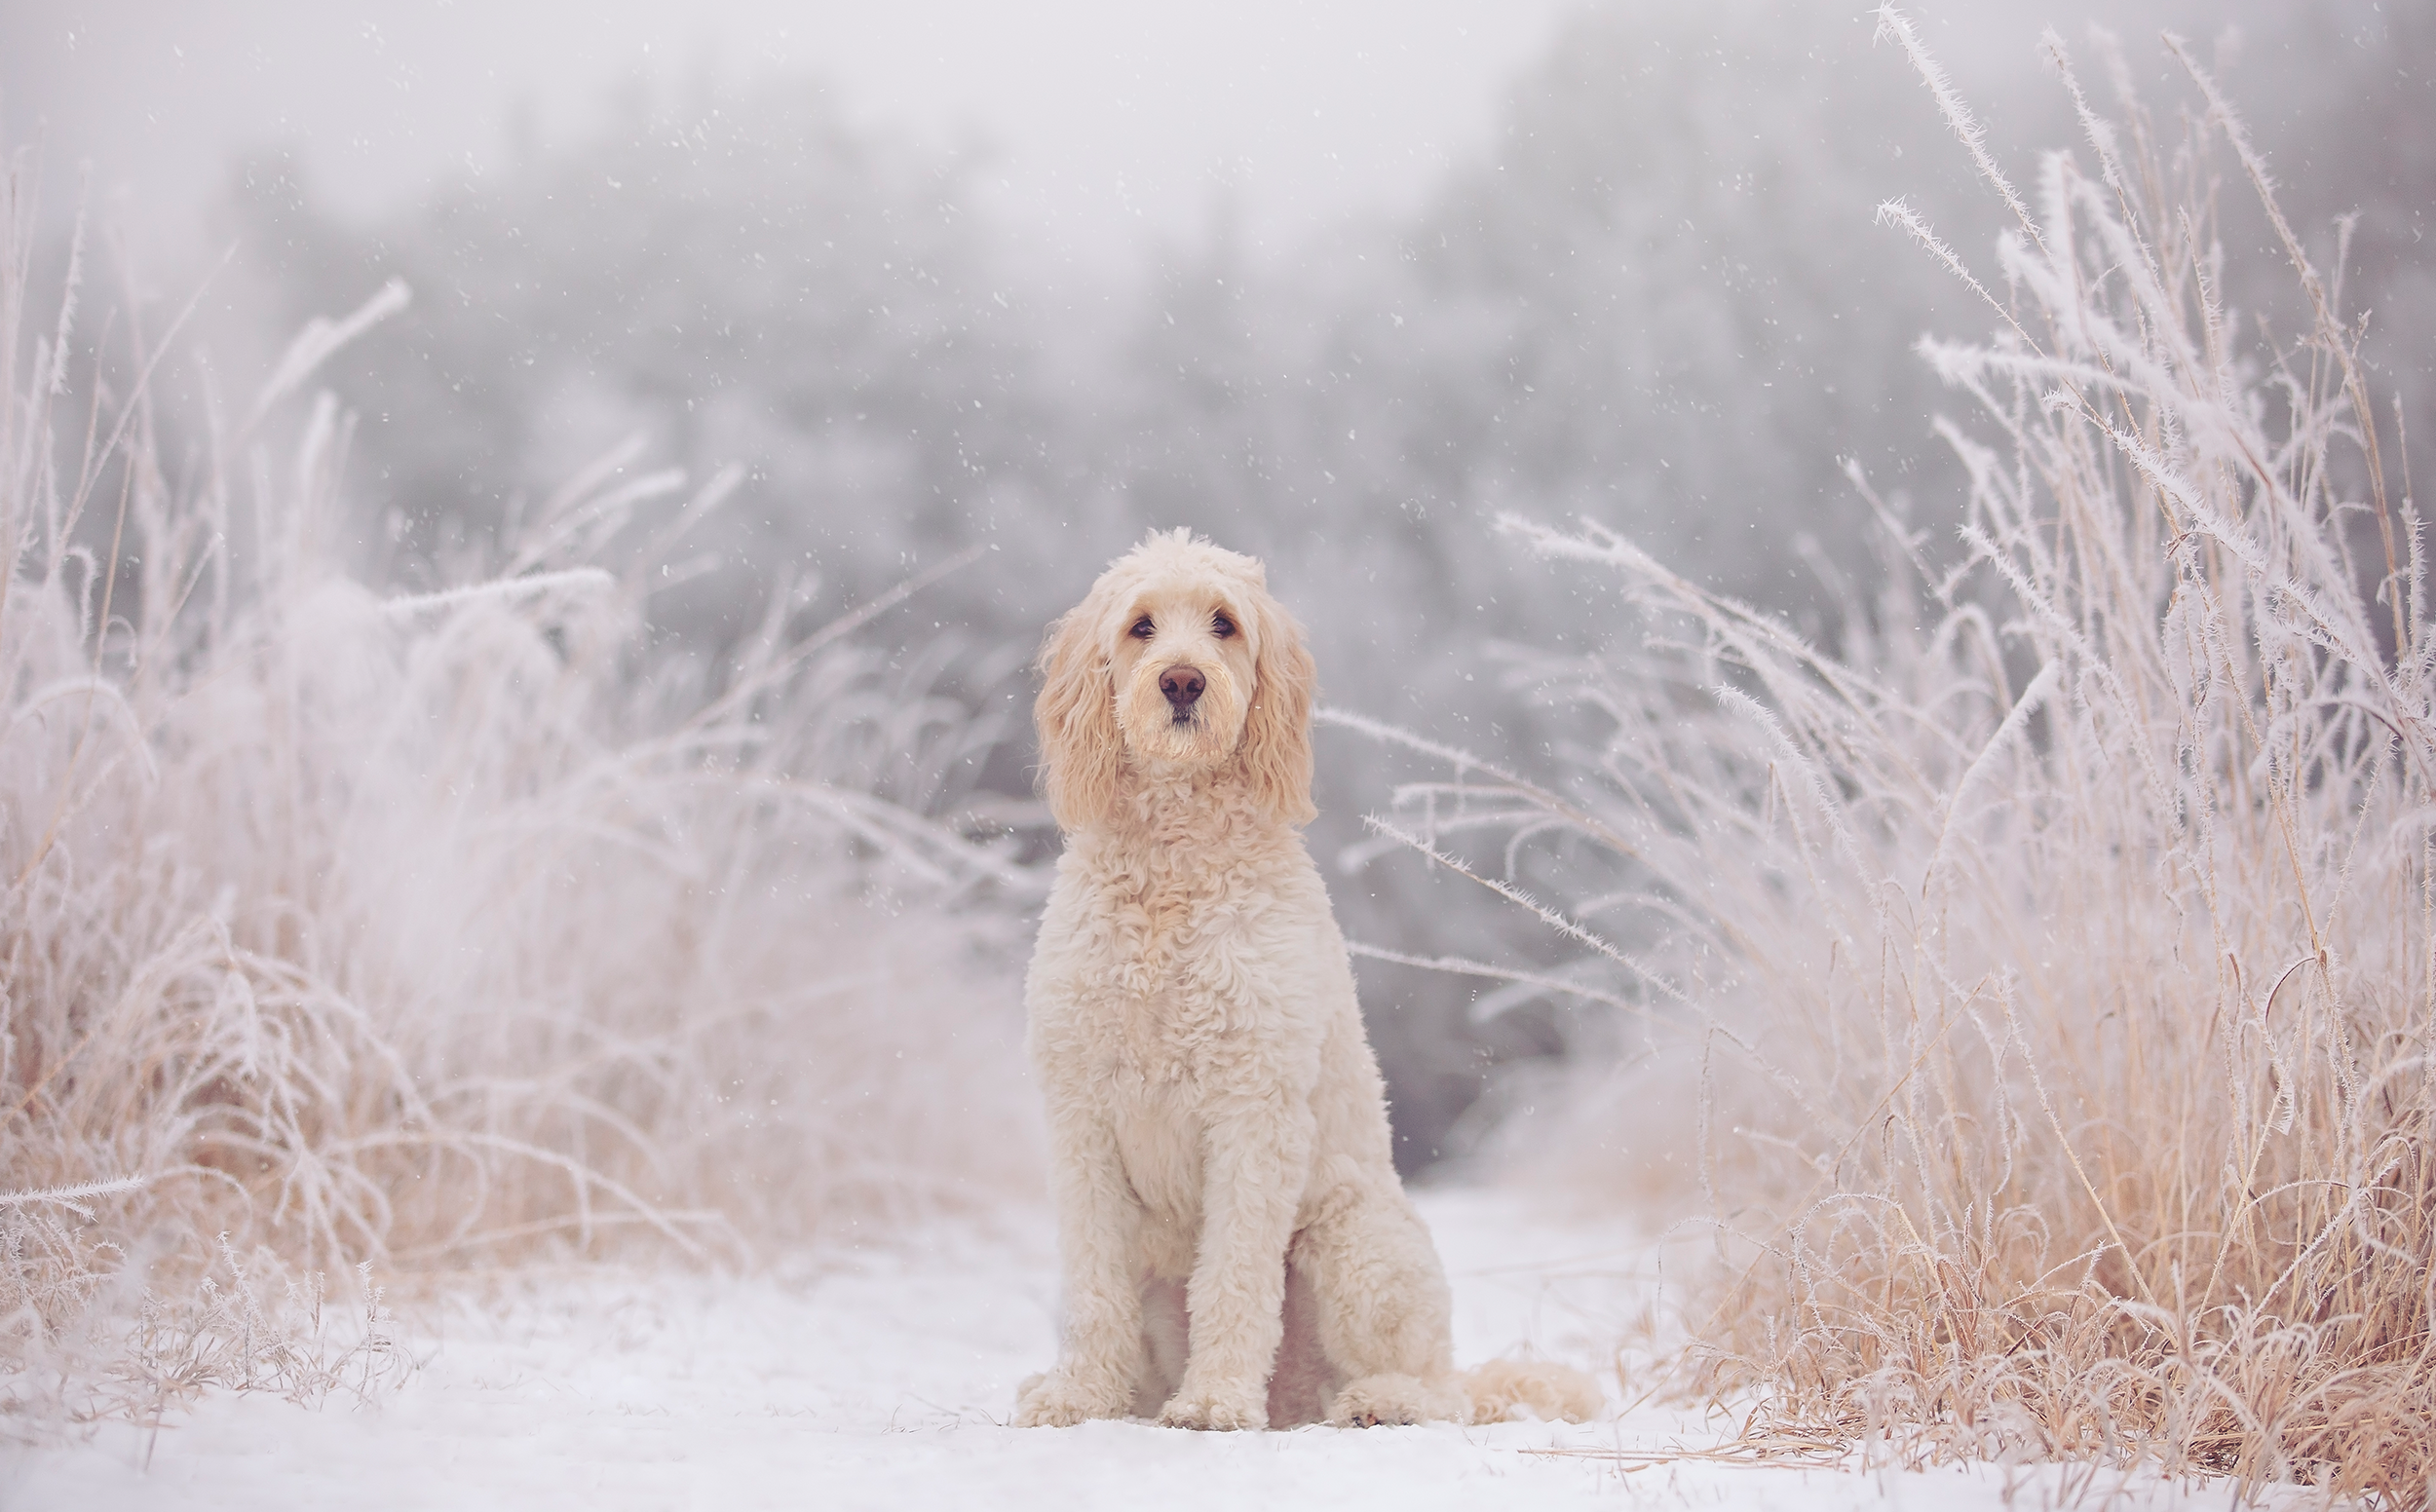 A cream colored Goldendoodle with a puppy cut sitting in a magical looking winter wonderland with snow and hoarfrost.